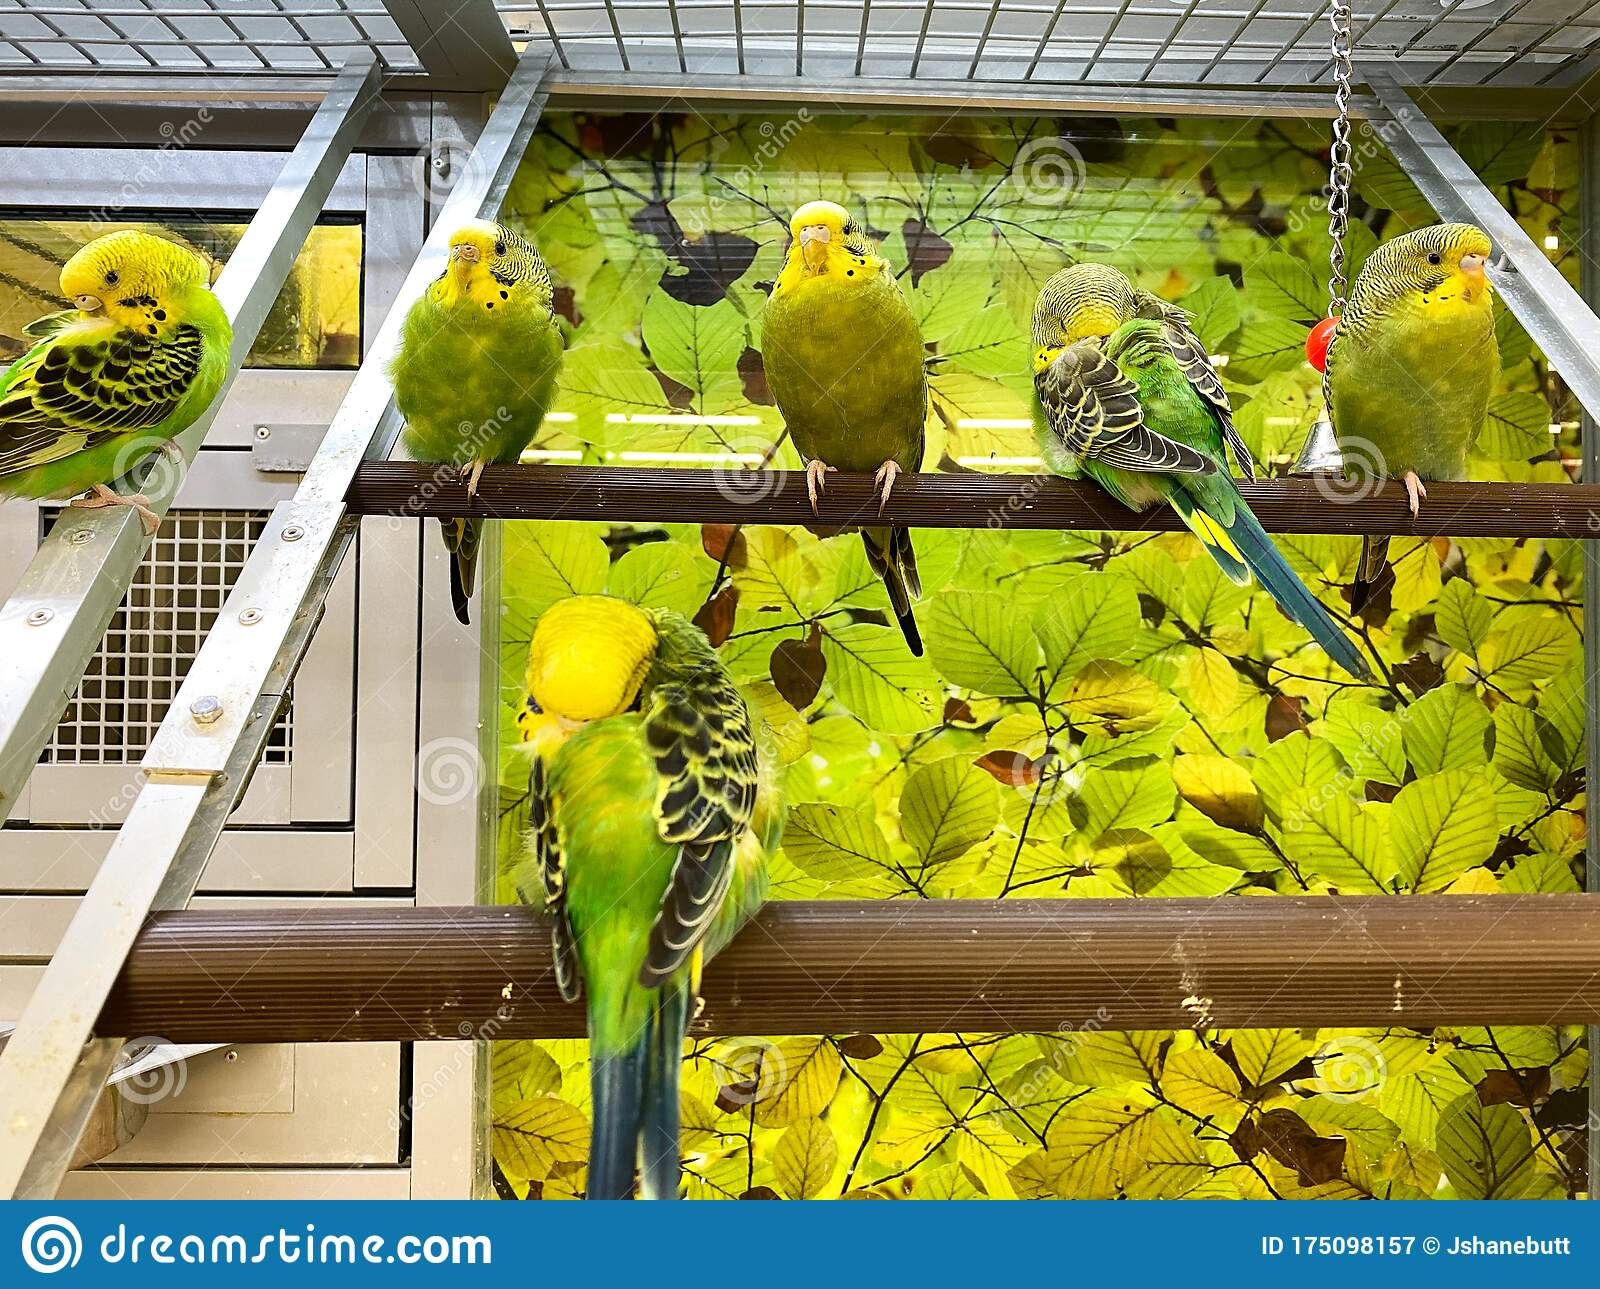 A Flock Green And Yellow Parakeets In An Aquarium For Sale At A Petsmart Pet Superstore Editorial Photography Image Of Furry Furniture 175098157